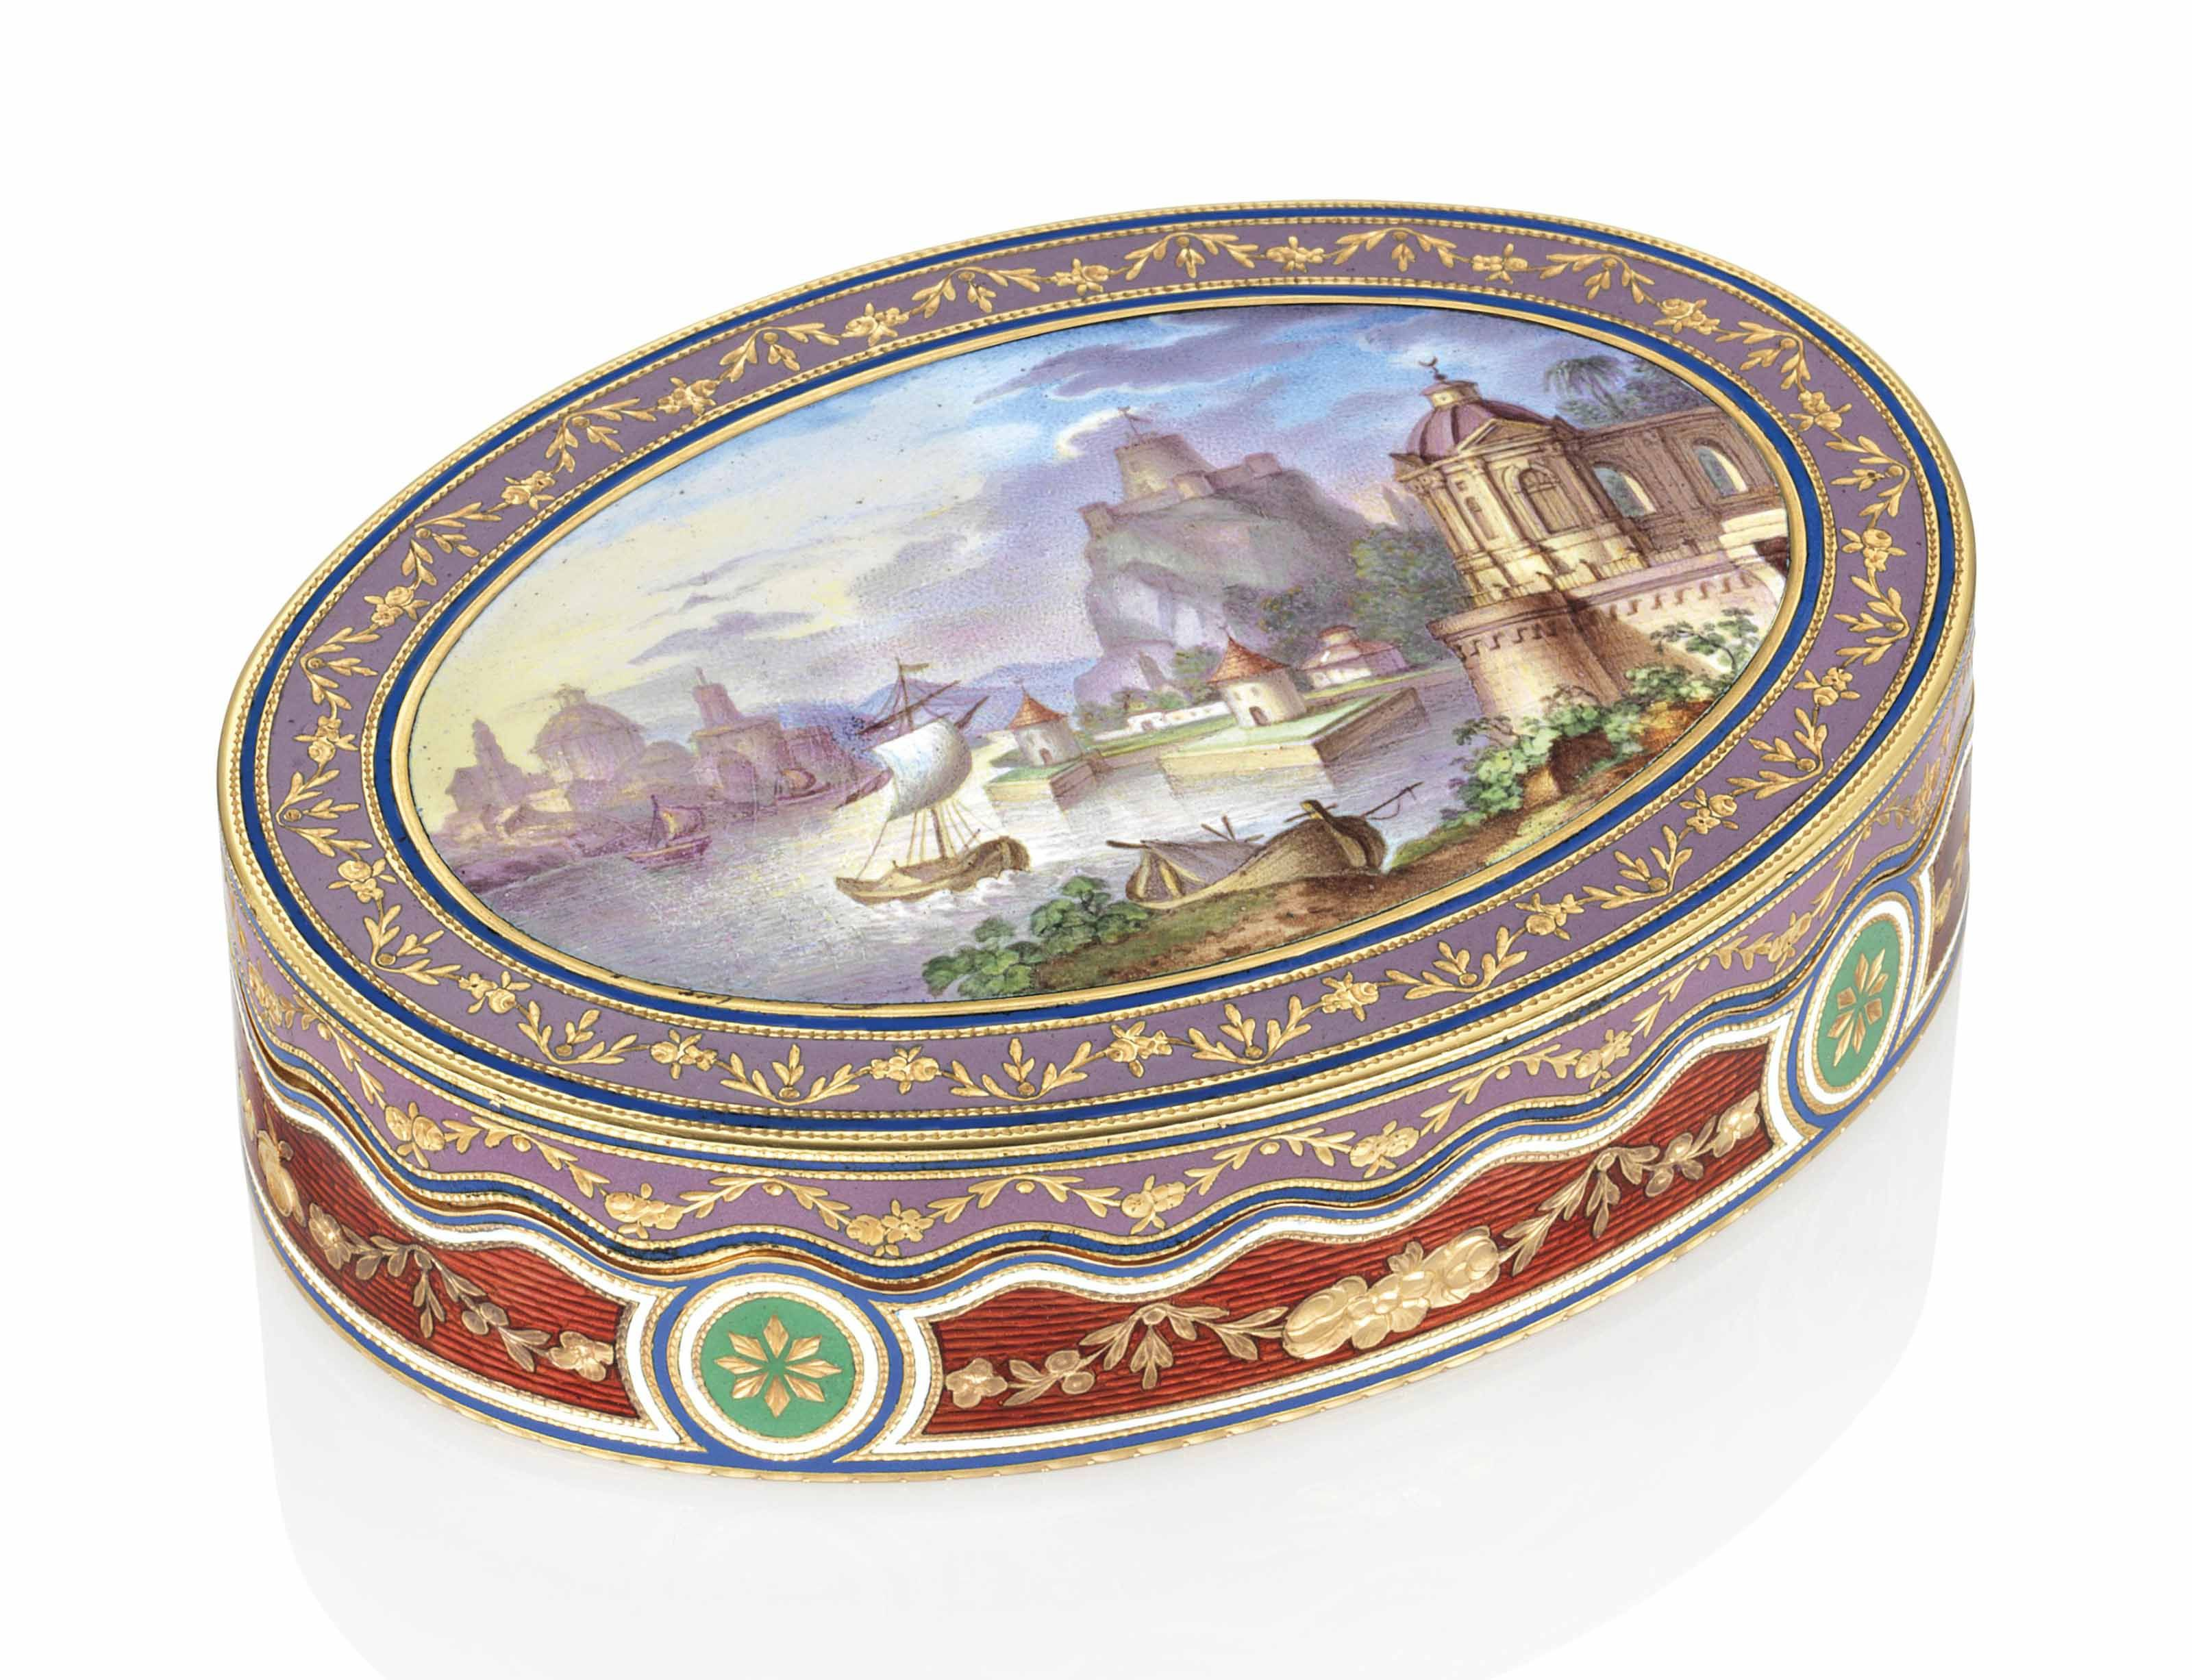 An Austrian Enamelled Gold Snuff Box By Josef Wolffgang Schmidt Fl 1769 1836 Marked Vienna Circa 1810 Price In 2020 With Images Antique Boxes Beautiful Box Decorative Boxes